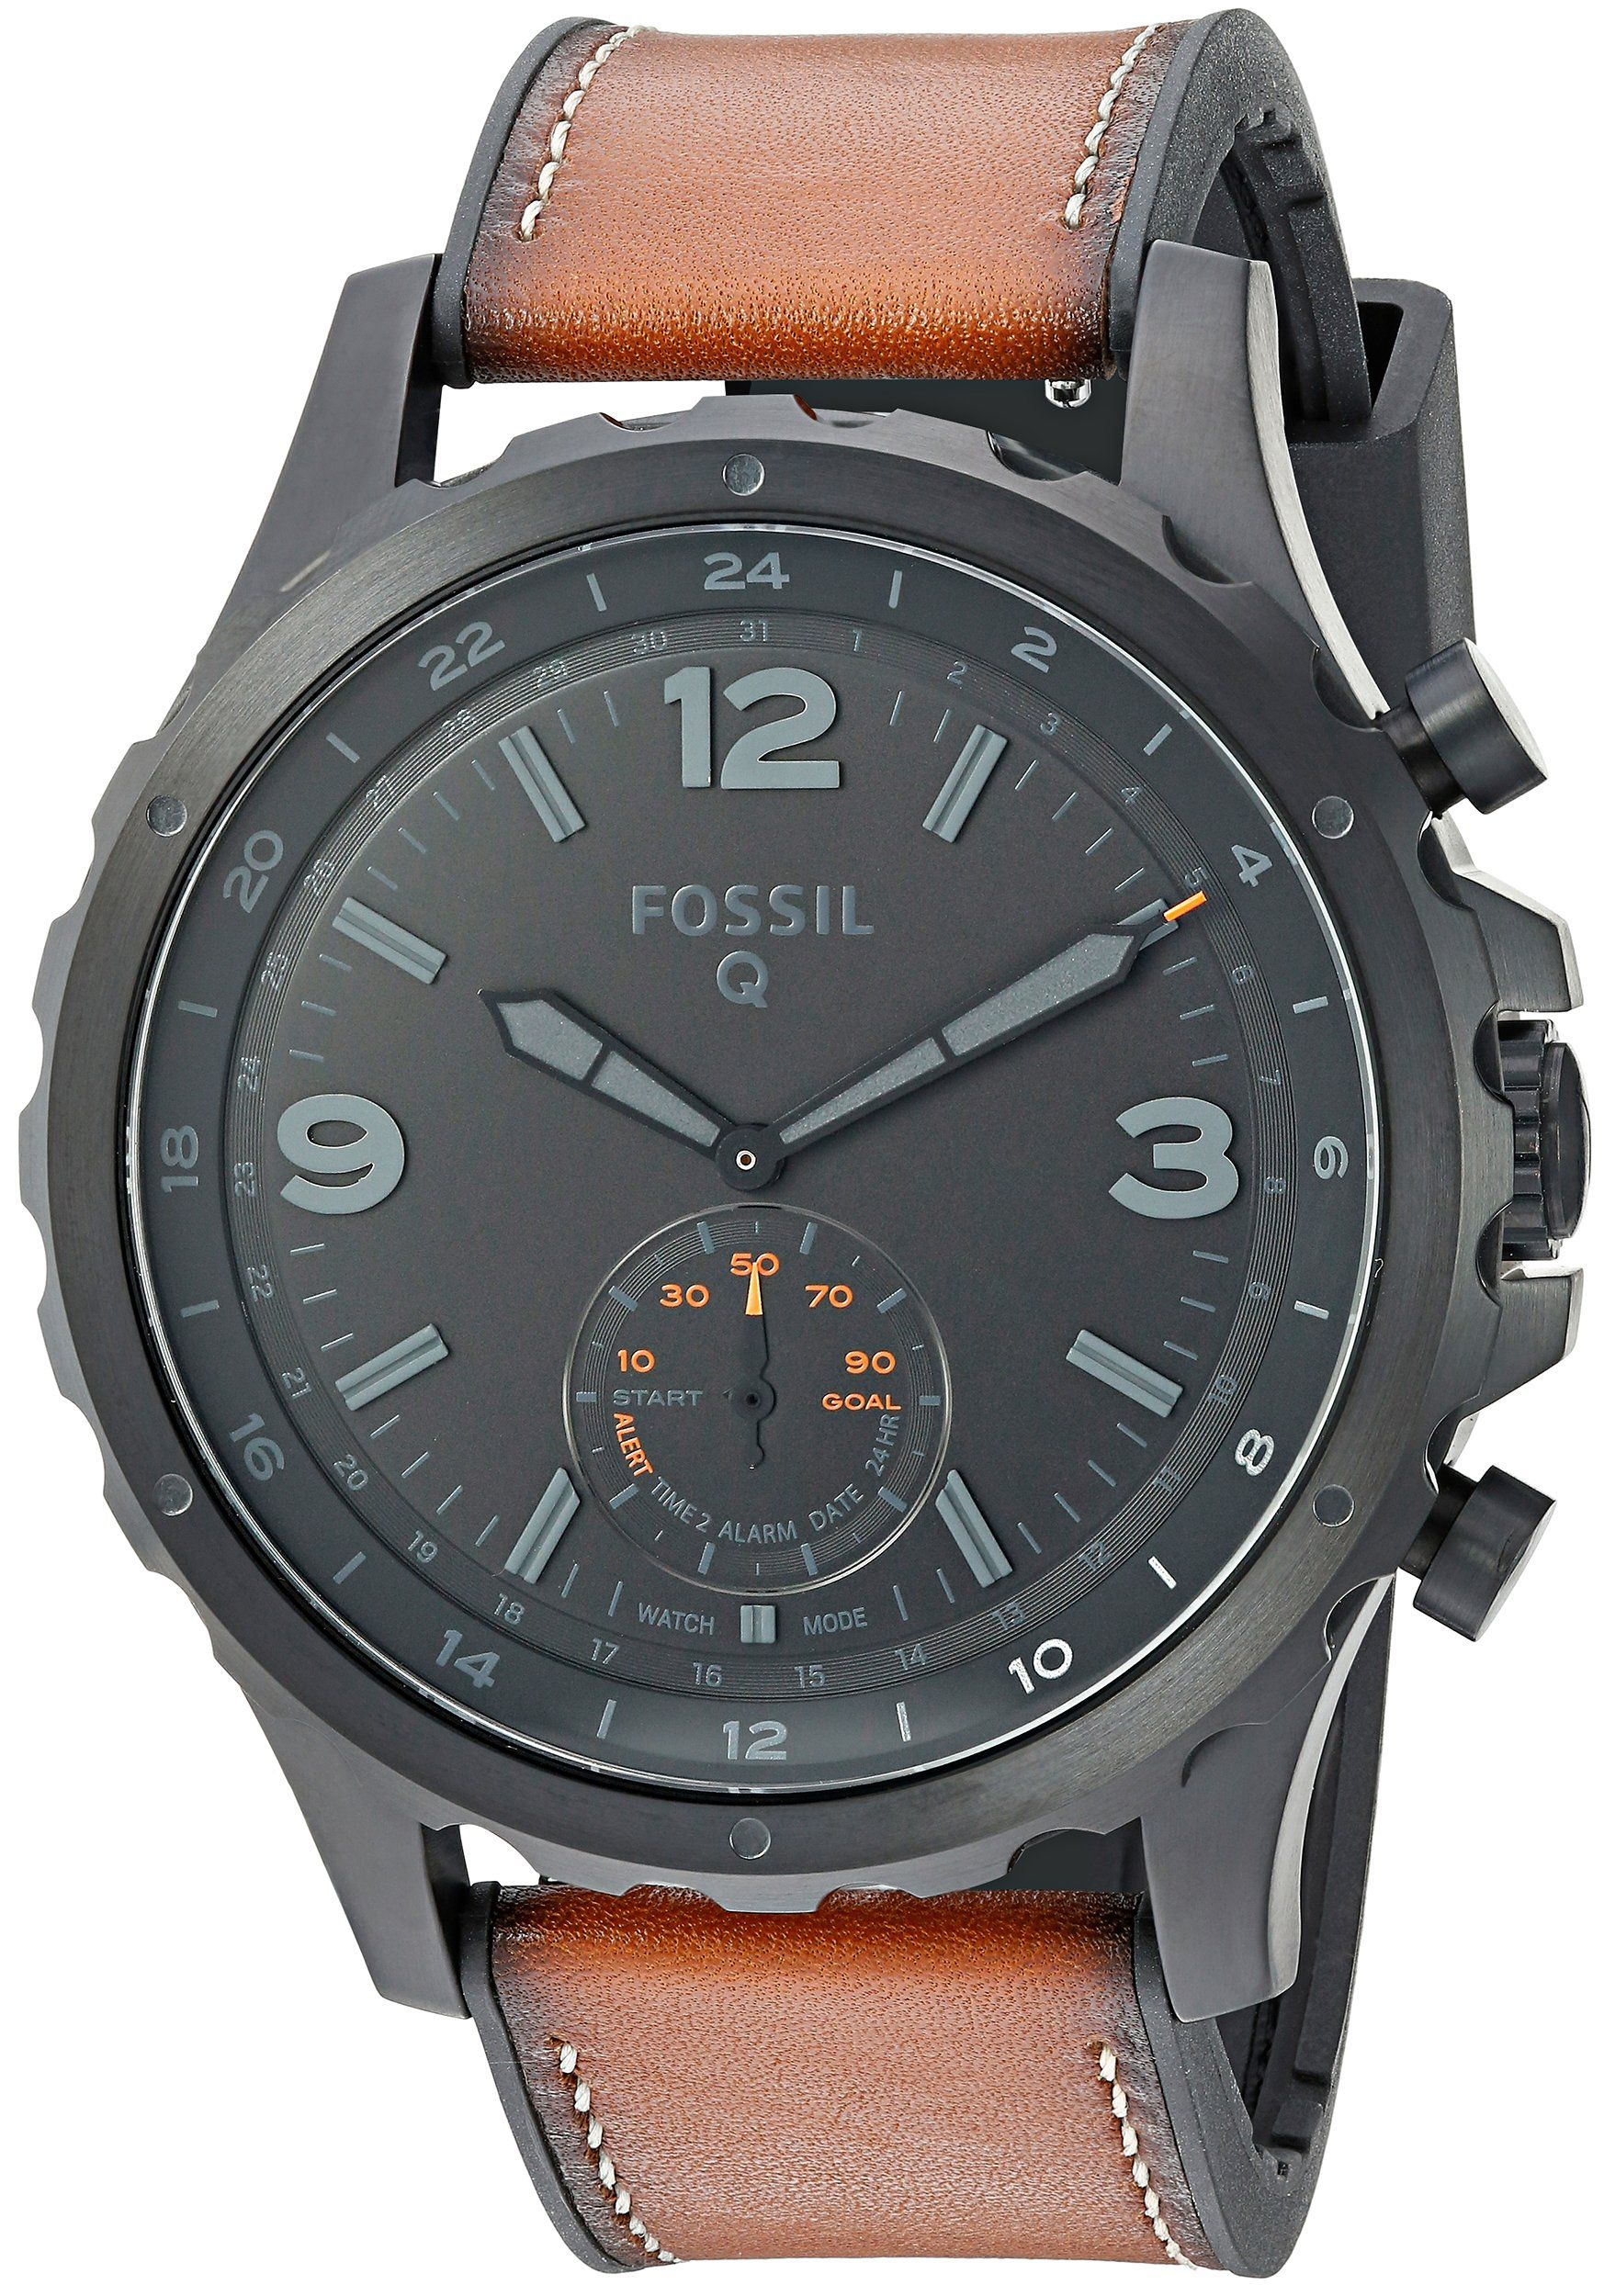 Fossil Hybrid Smartwatch Q Nate Dark Brown Leather ** More